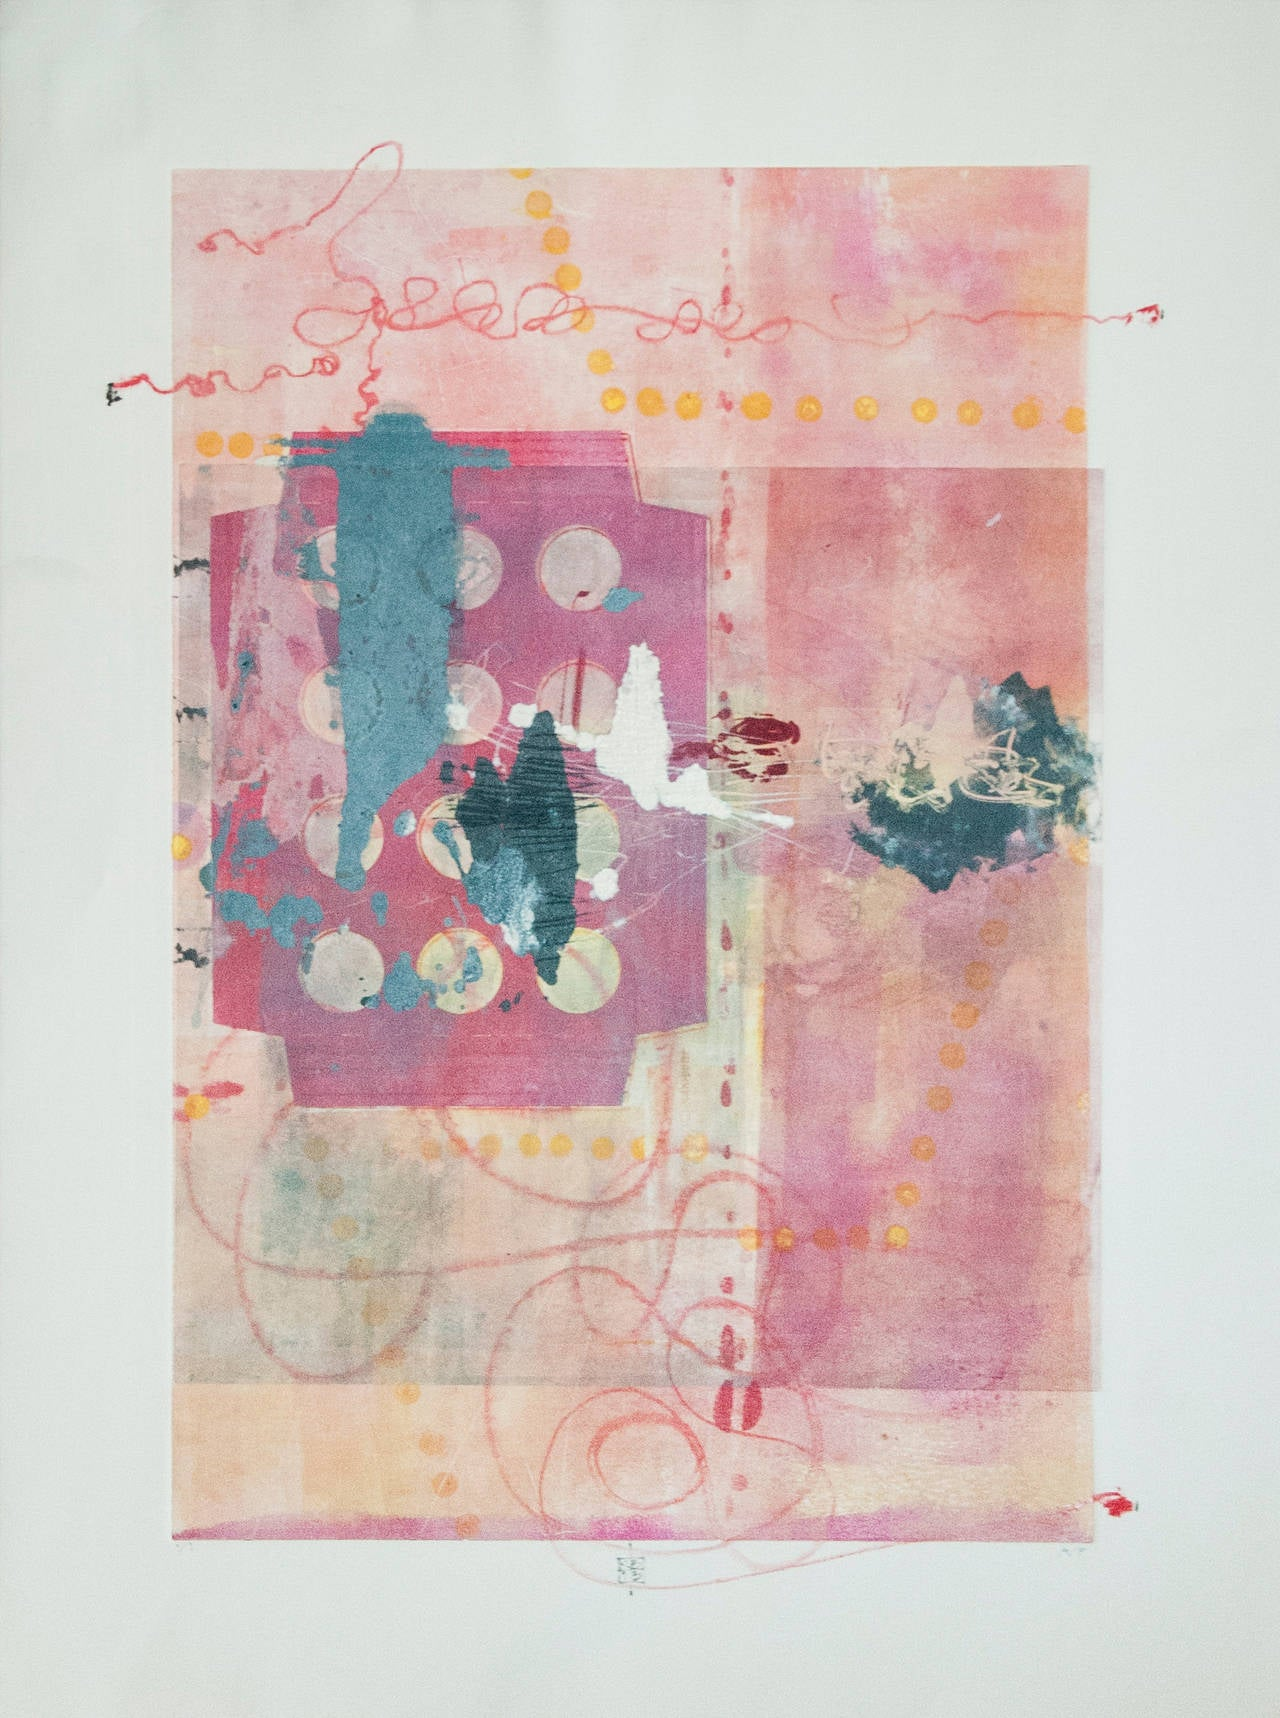 Karin Bruckner Abstract Print - PieceofCake